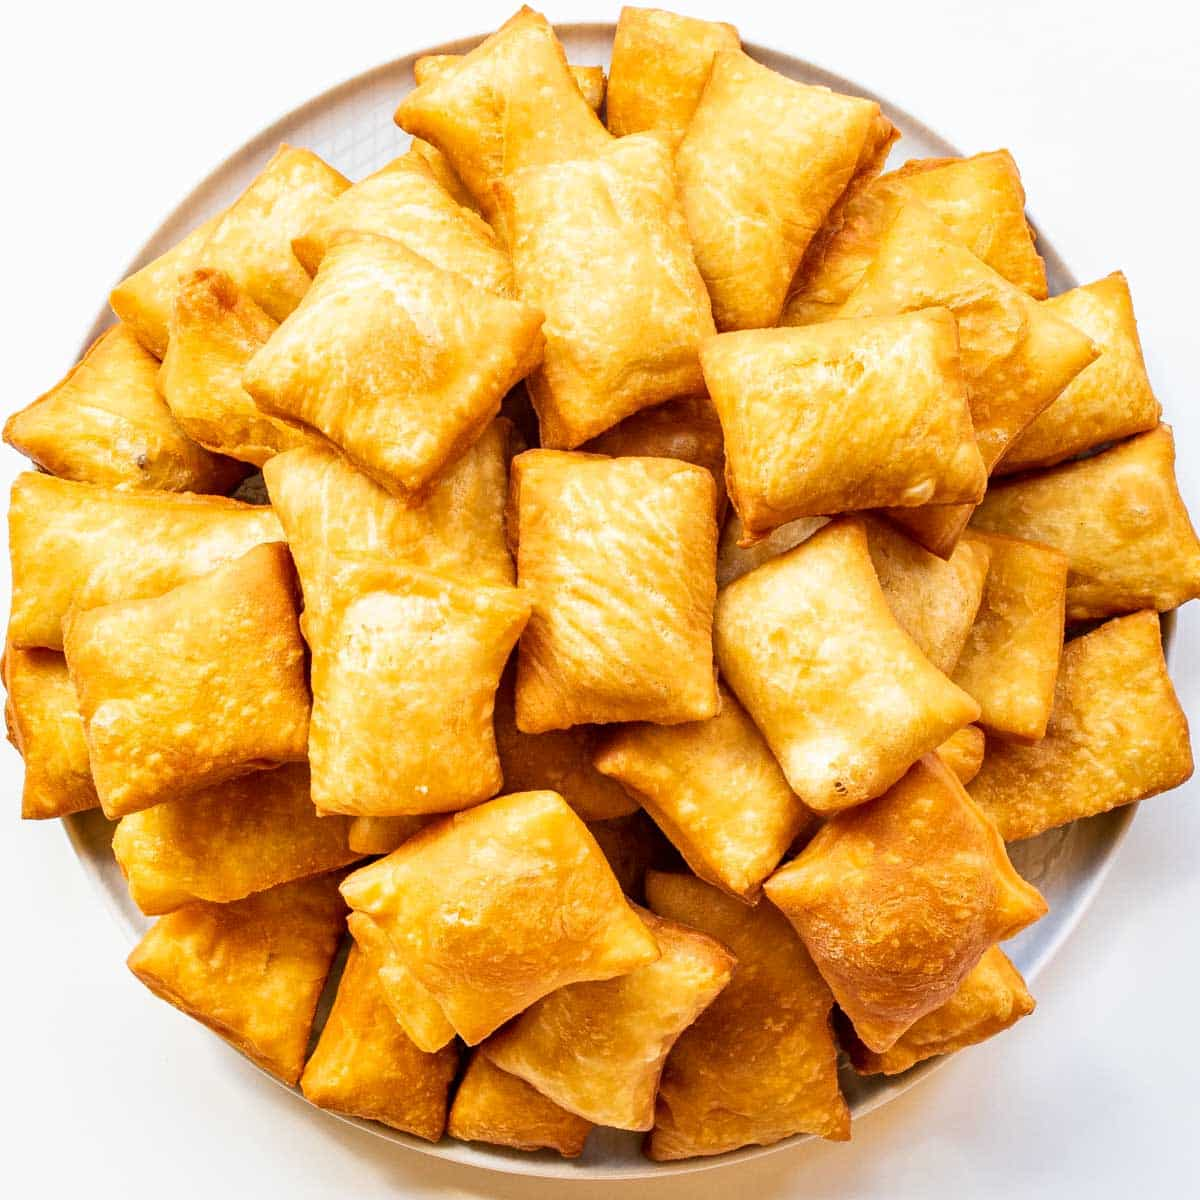 freshly fried sopapillas on a big white plate.